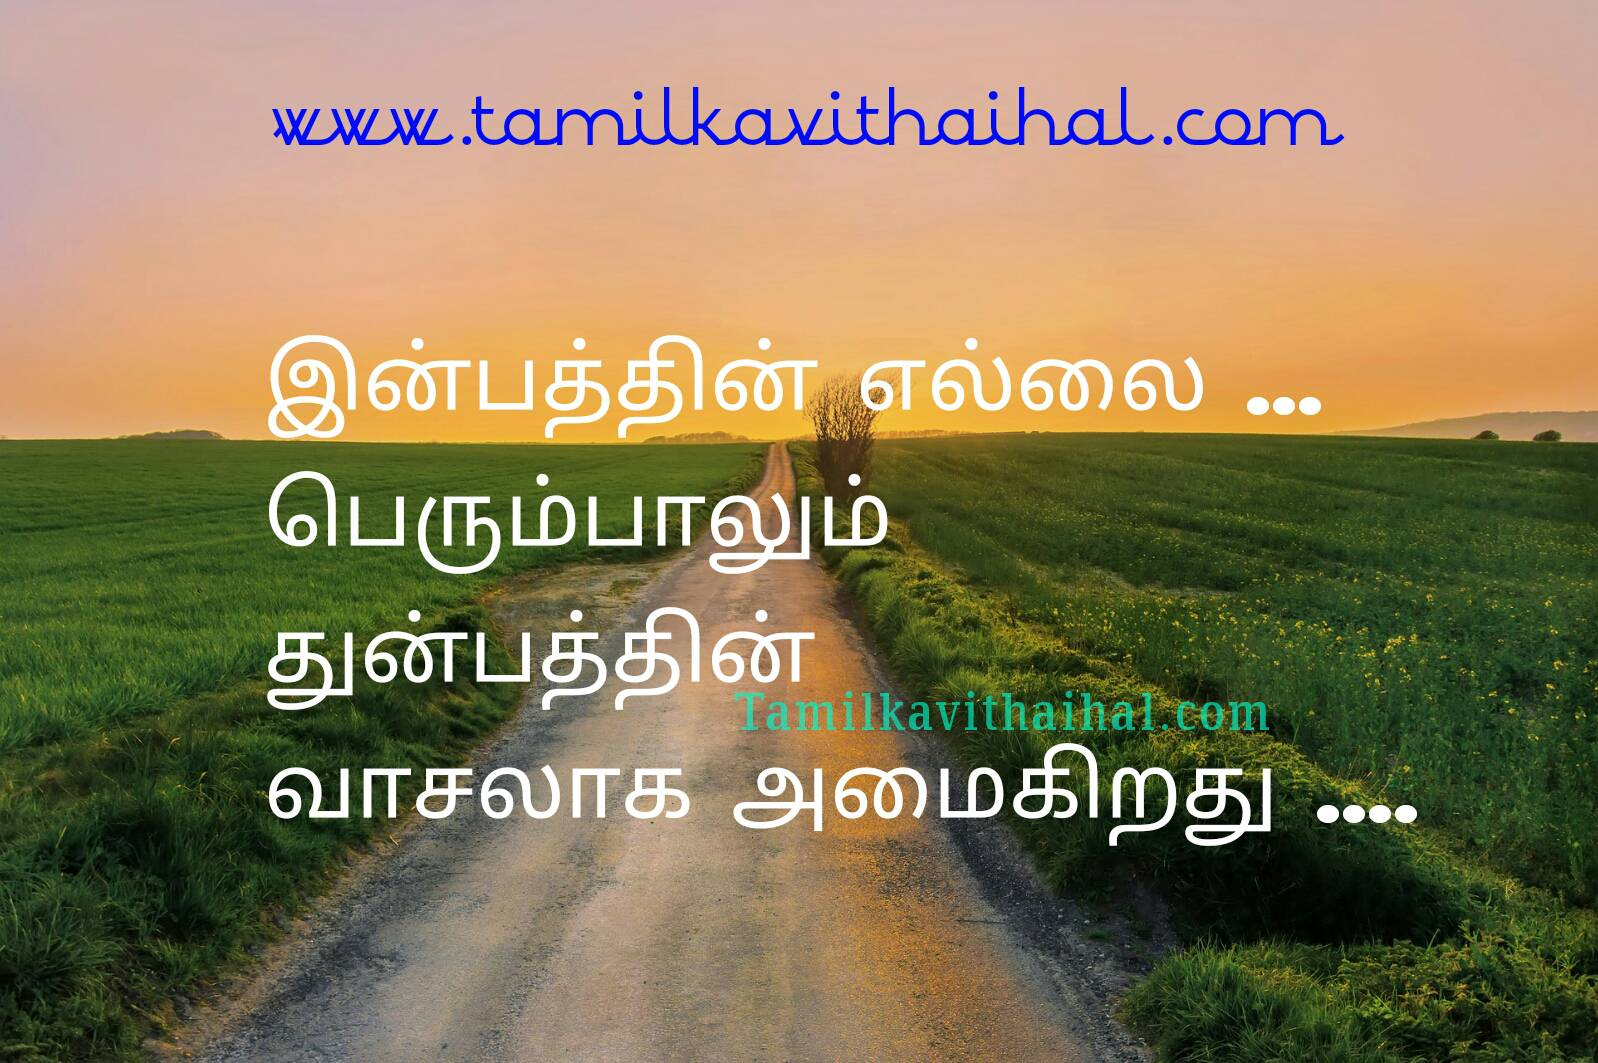 Best happy moments happiness into badmoments situations quotes in tamil thathuvam real life events kavithai status